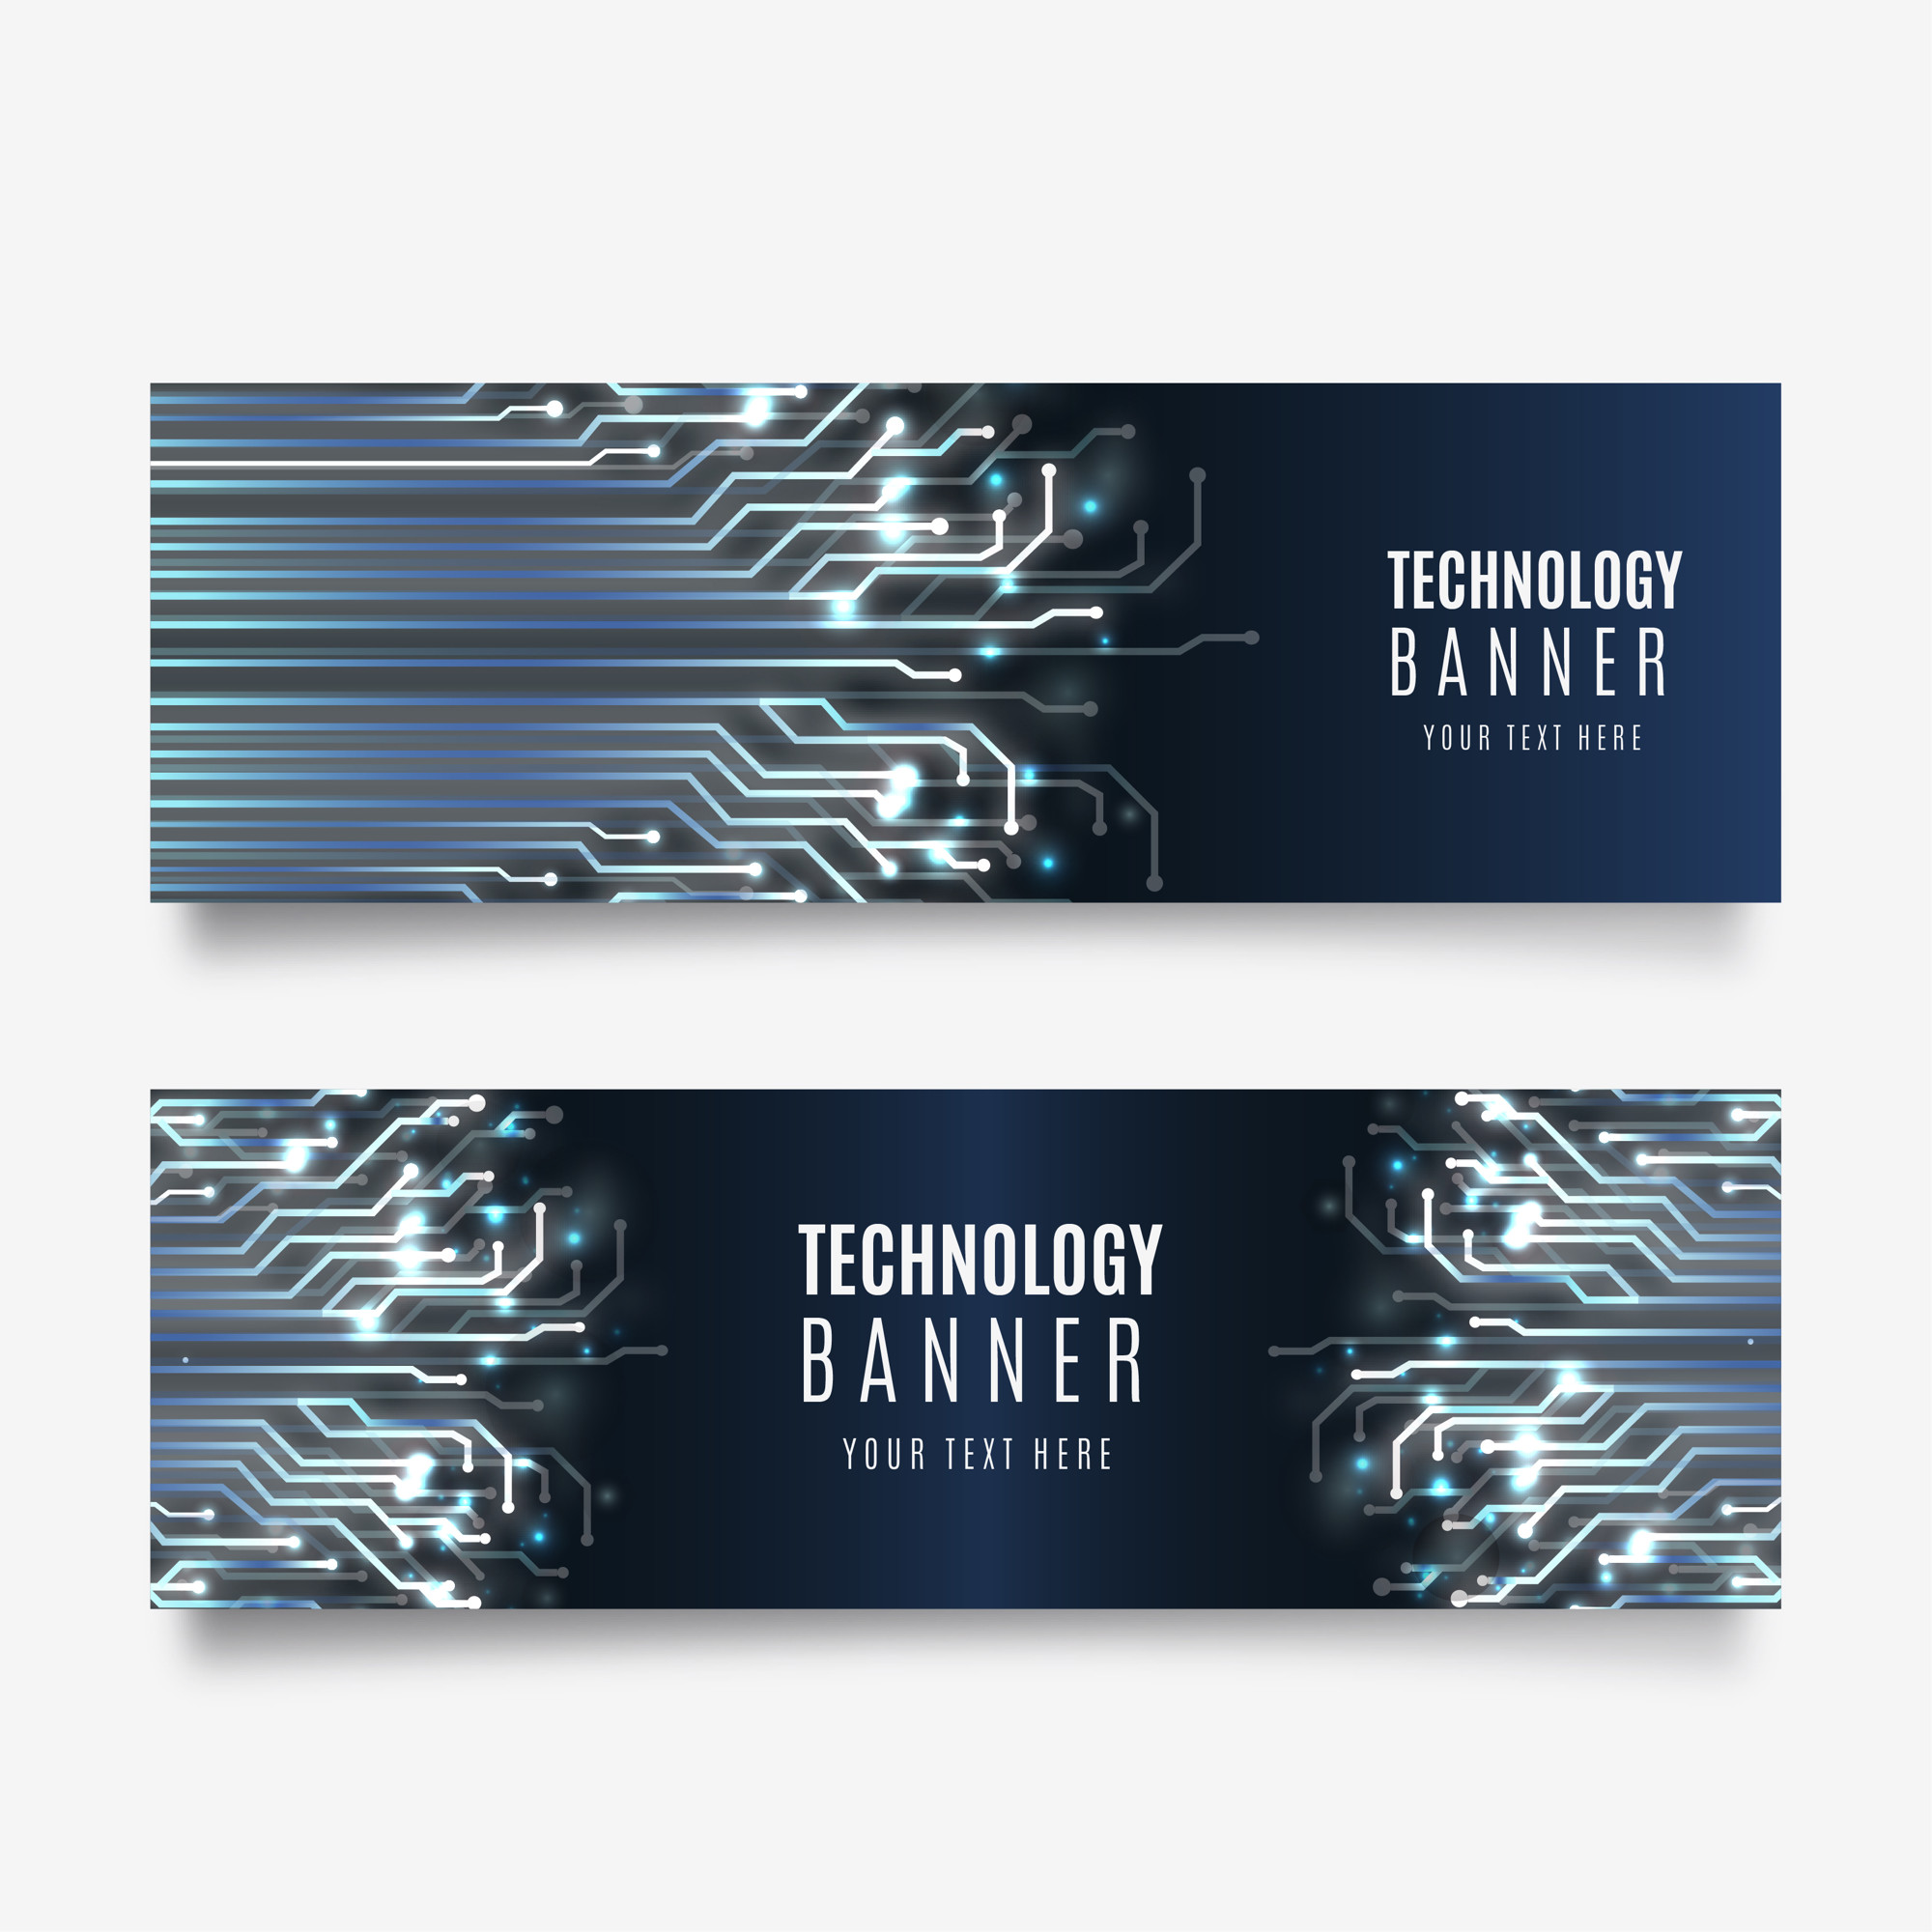 Technology banner collection